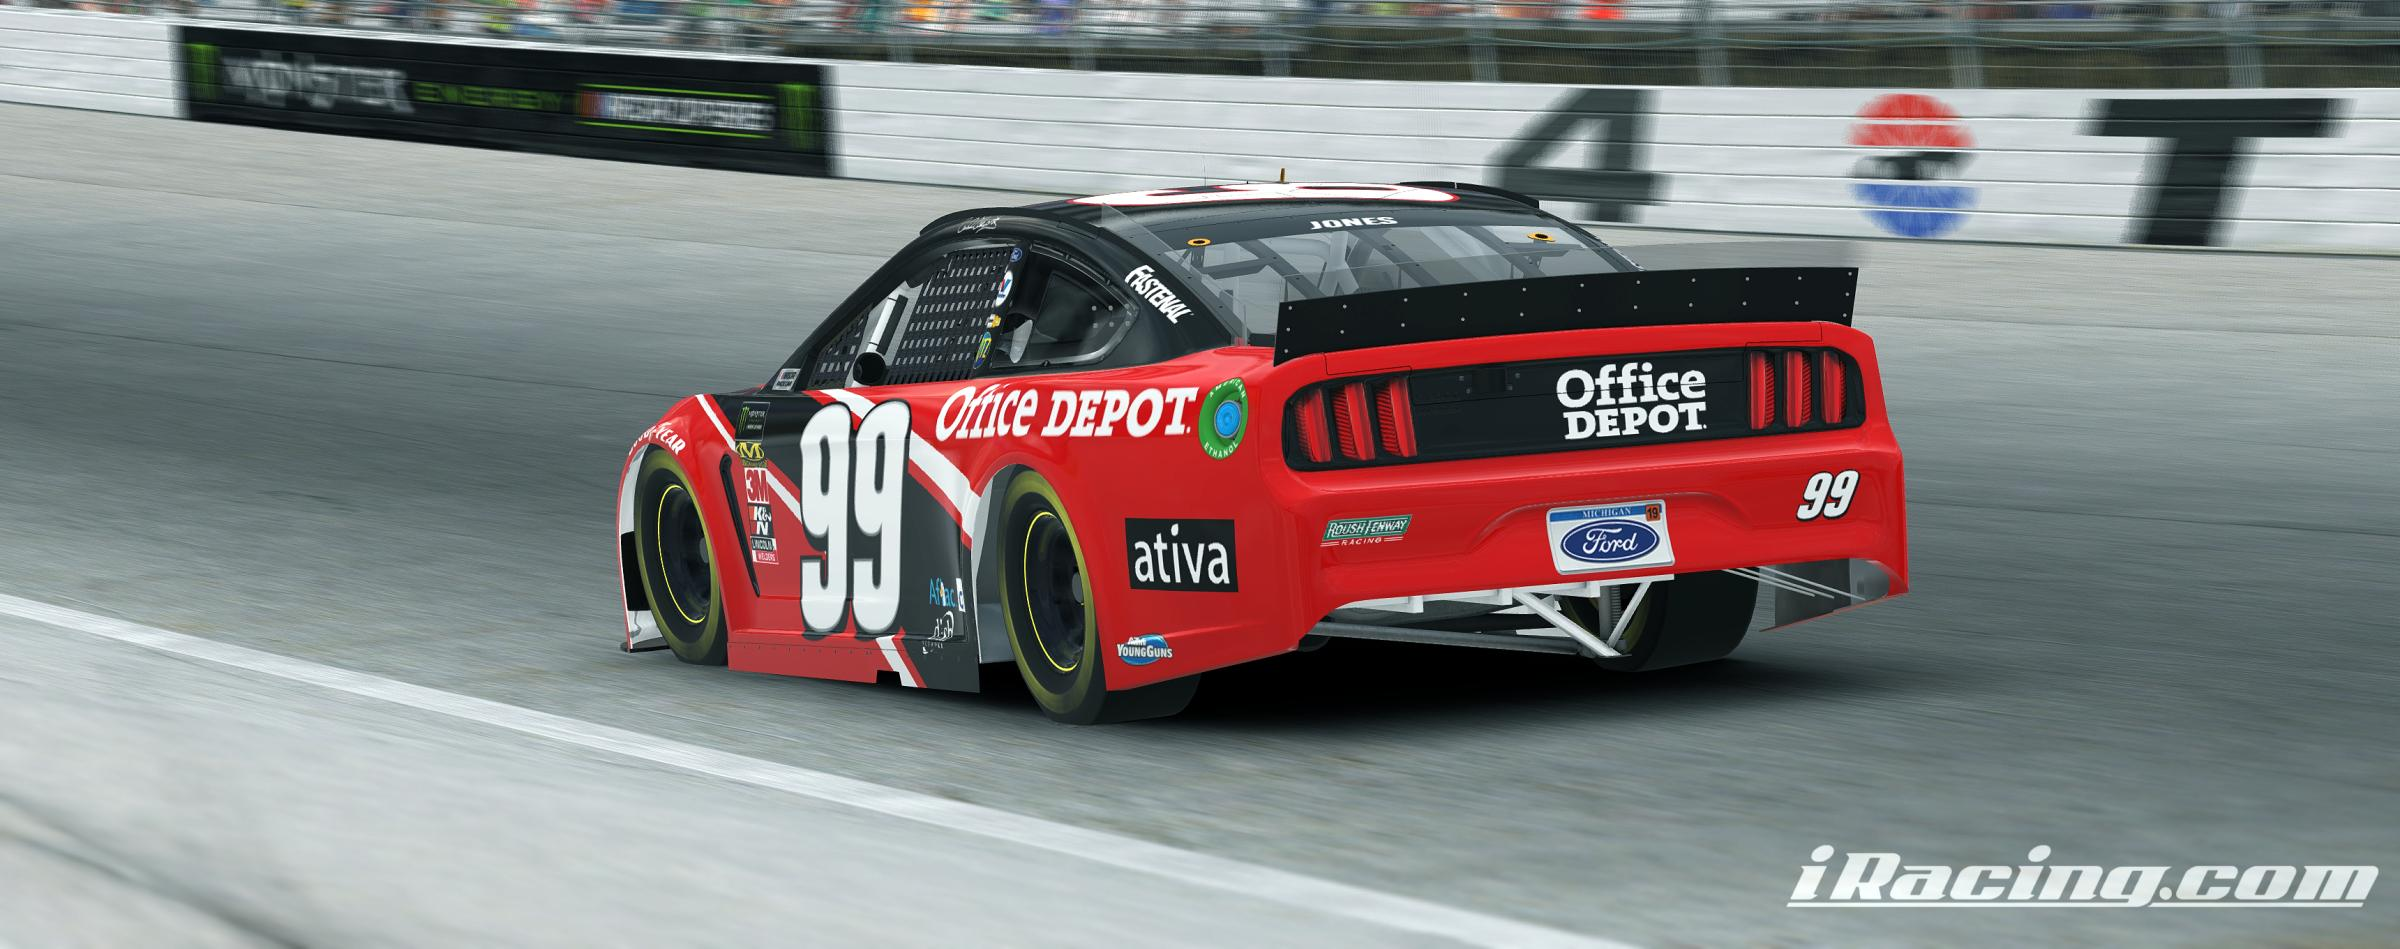 Preview of Carl Edwards Office Depot by Thomas Morris